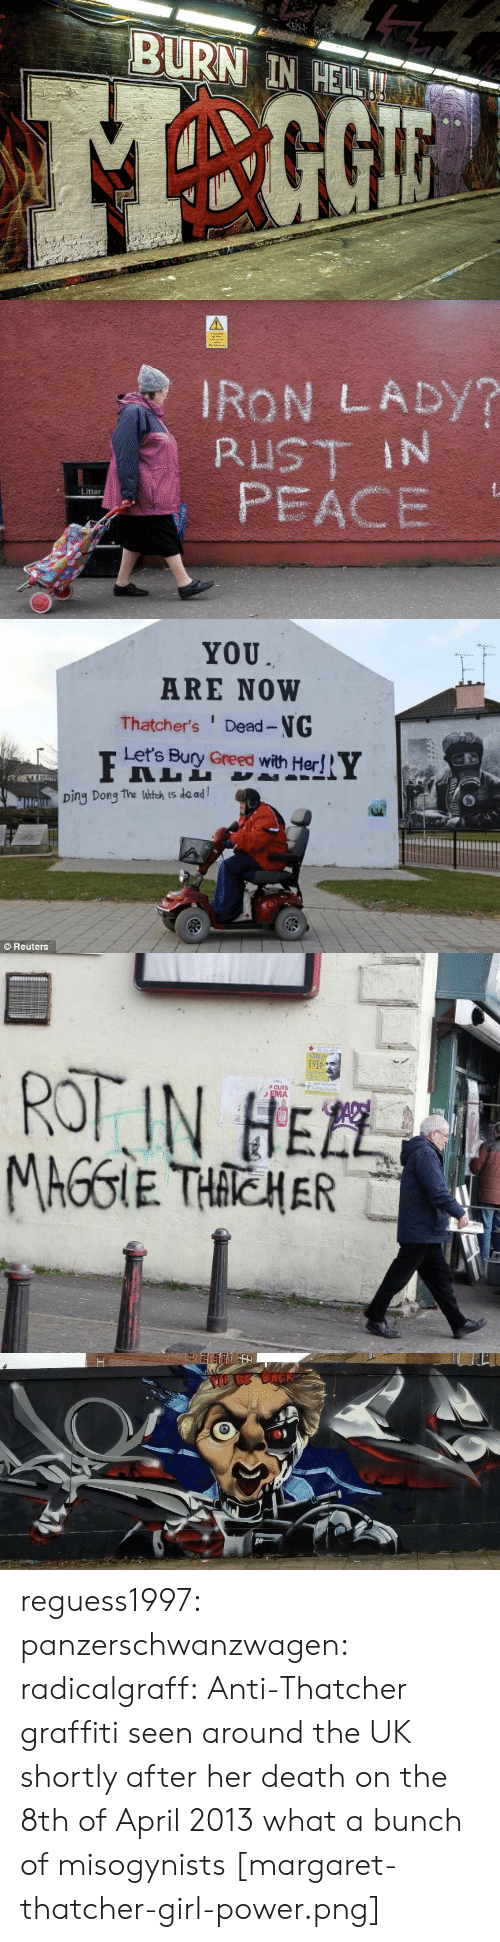 burn in hell: EN  BURN IN HELL!   IRON LADY?  RUST IN  PEACE  Litter   YOU  ARE NOW  Thatcher's Dead-NG  Let's Bury Greed with Her!  Ding Dong the Witch is de ad  Reuters   1916  ROT IN HEZL  PCUTS  EMA  TEL  MAGGIE THACHER   BE BACK reguess1997:  panzerschwanzwagen:   radicalgraff: Anti-Thatcher graffiti seen around the UK shortly after her death on the 8th of April 2013 what a bunch of misogynists   [margaret-thatcher-girl-power.png]